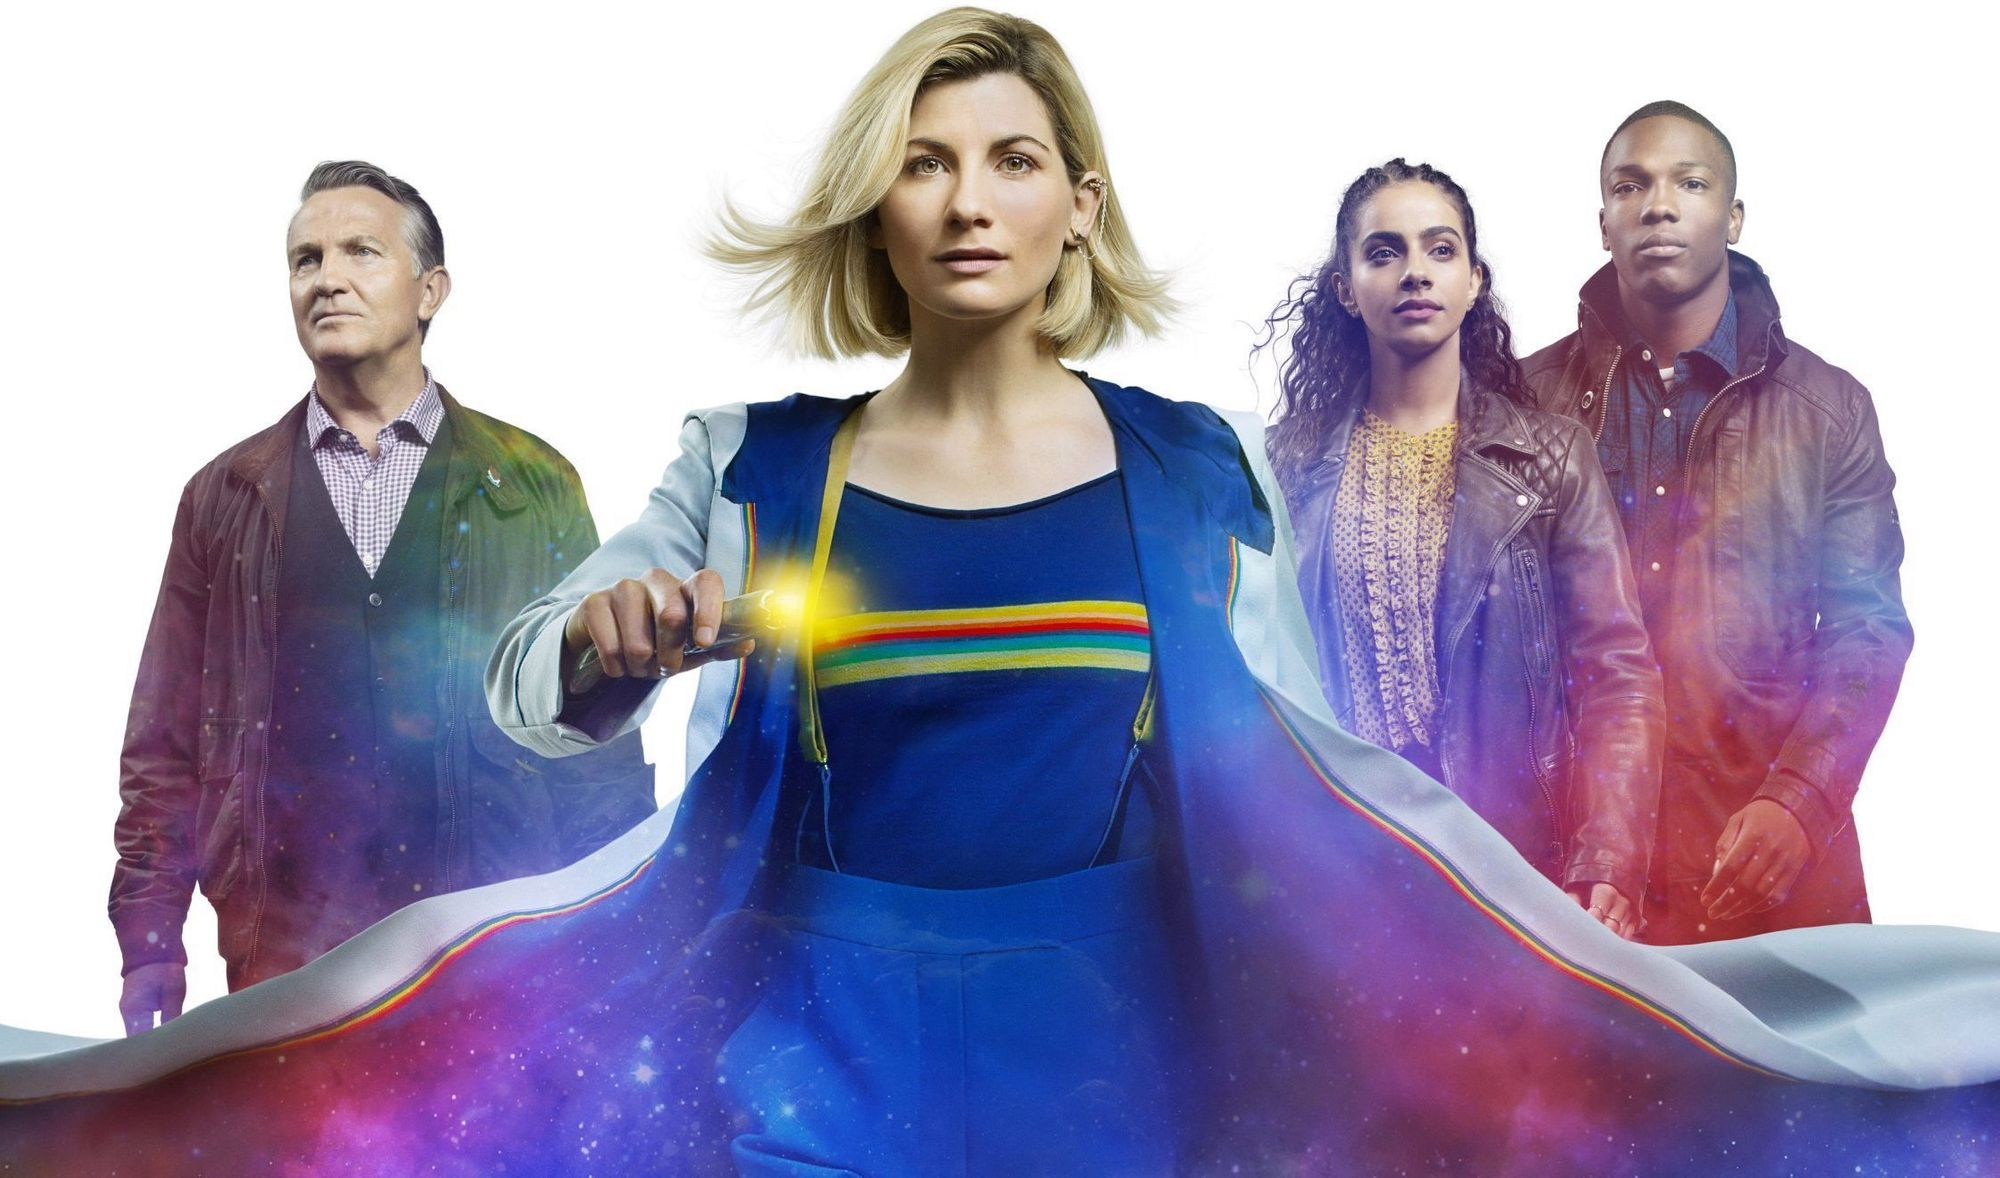 Doctor Who 'Spyfall' first look trailer!